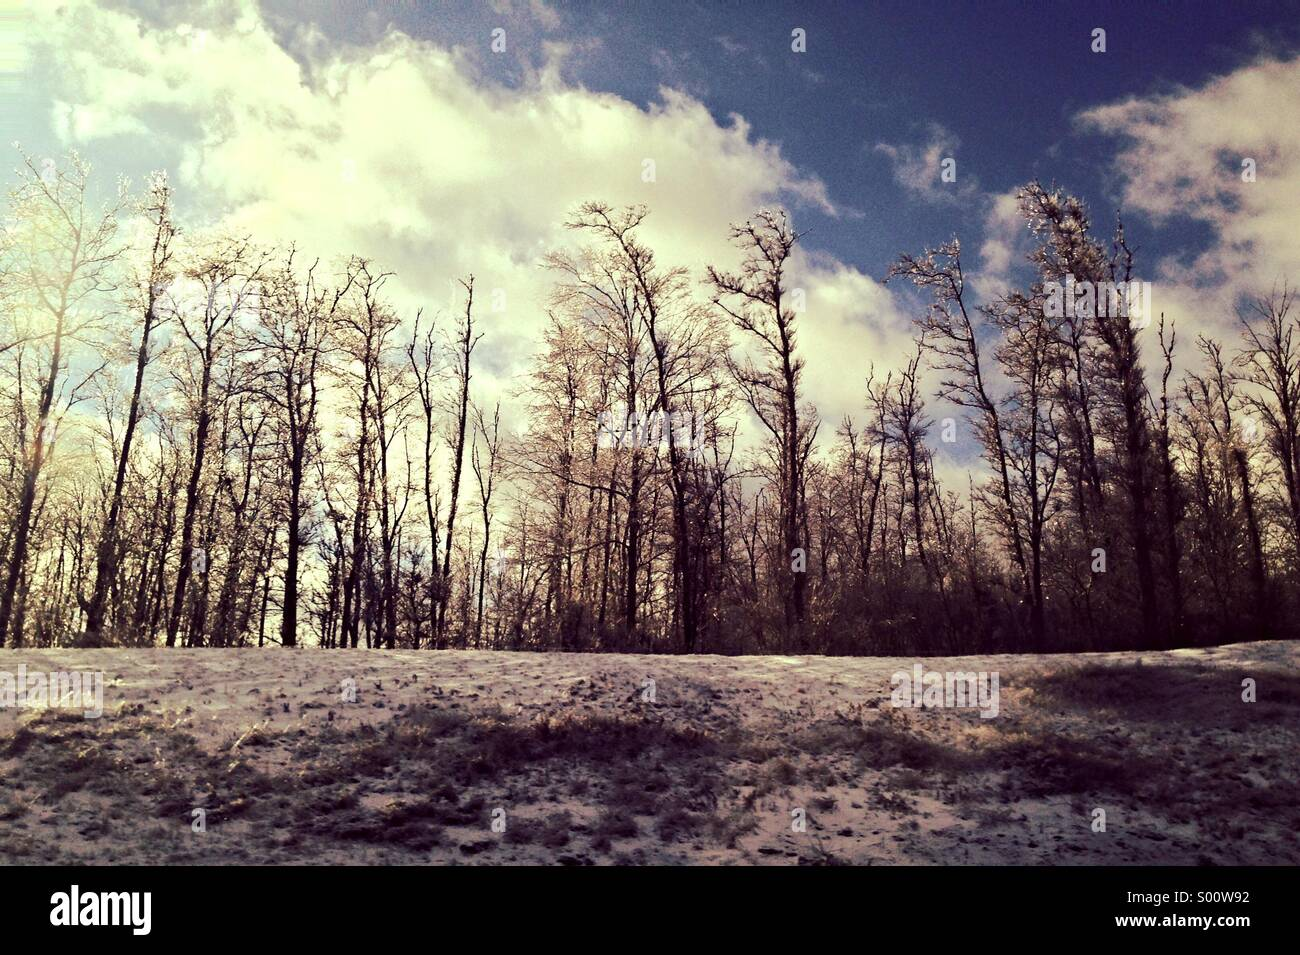 Winter trees on snowy mound - Stock Image